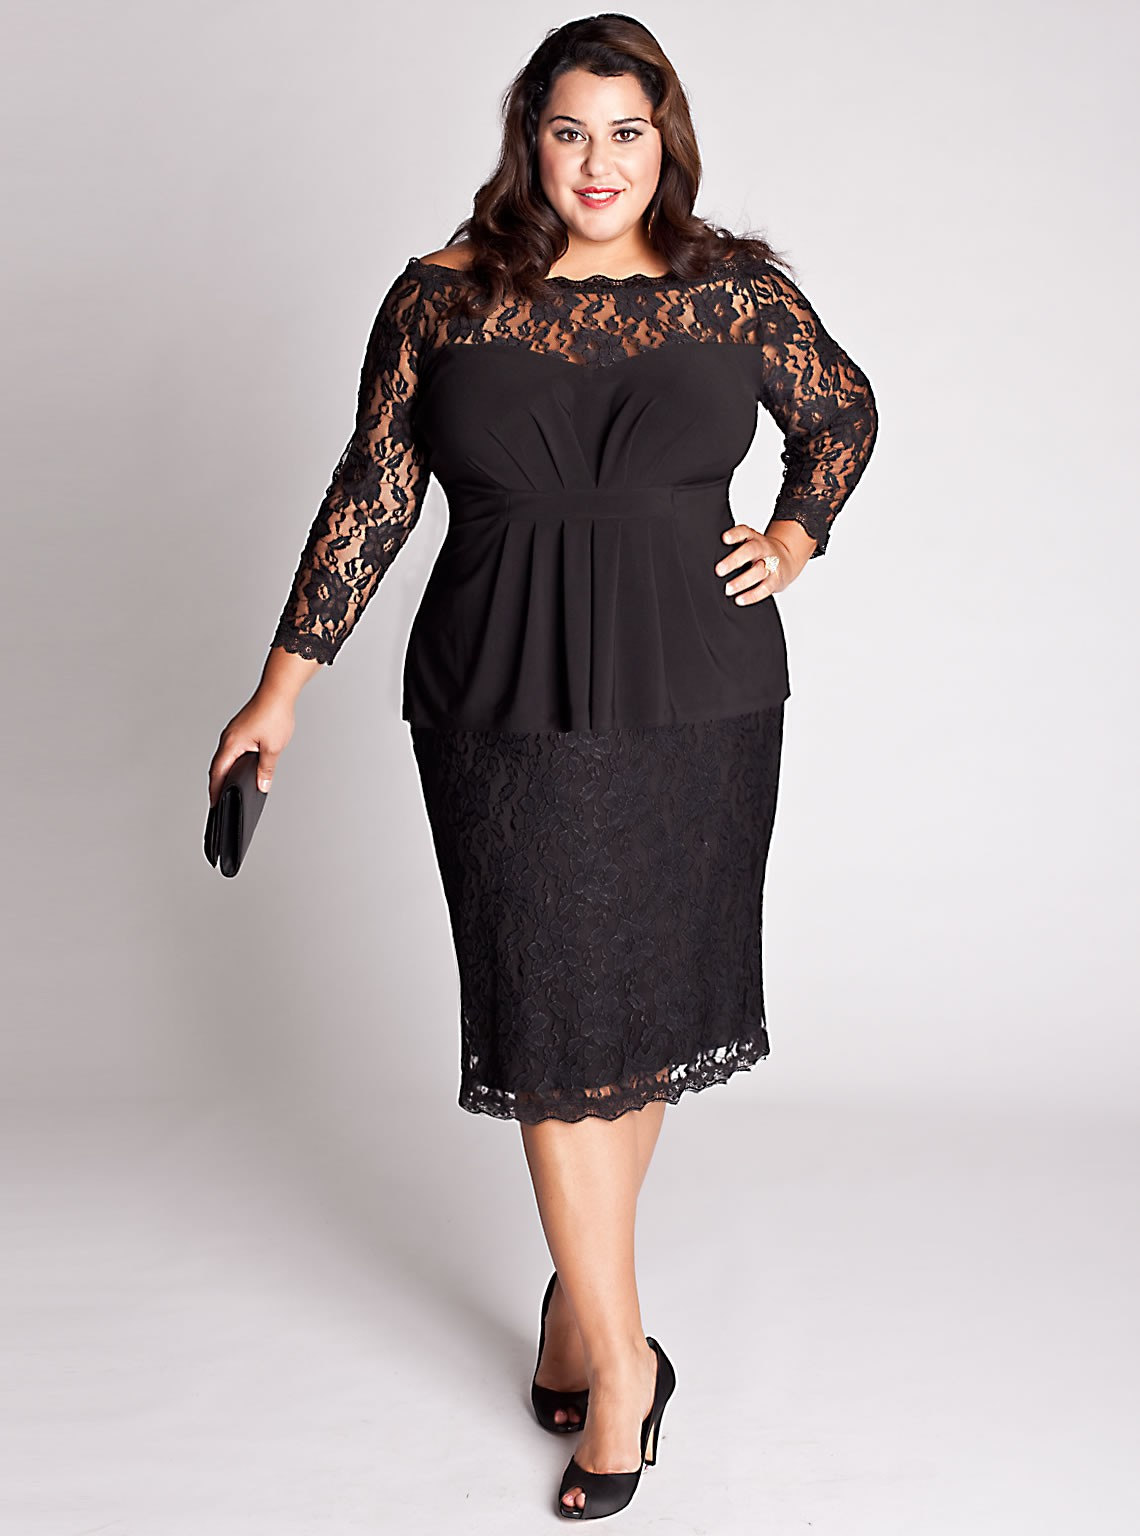 dresses for plus size women emejing plus size clothing dresses ideas plus size clothing CBRGZJZ